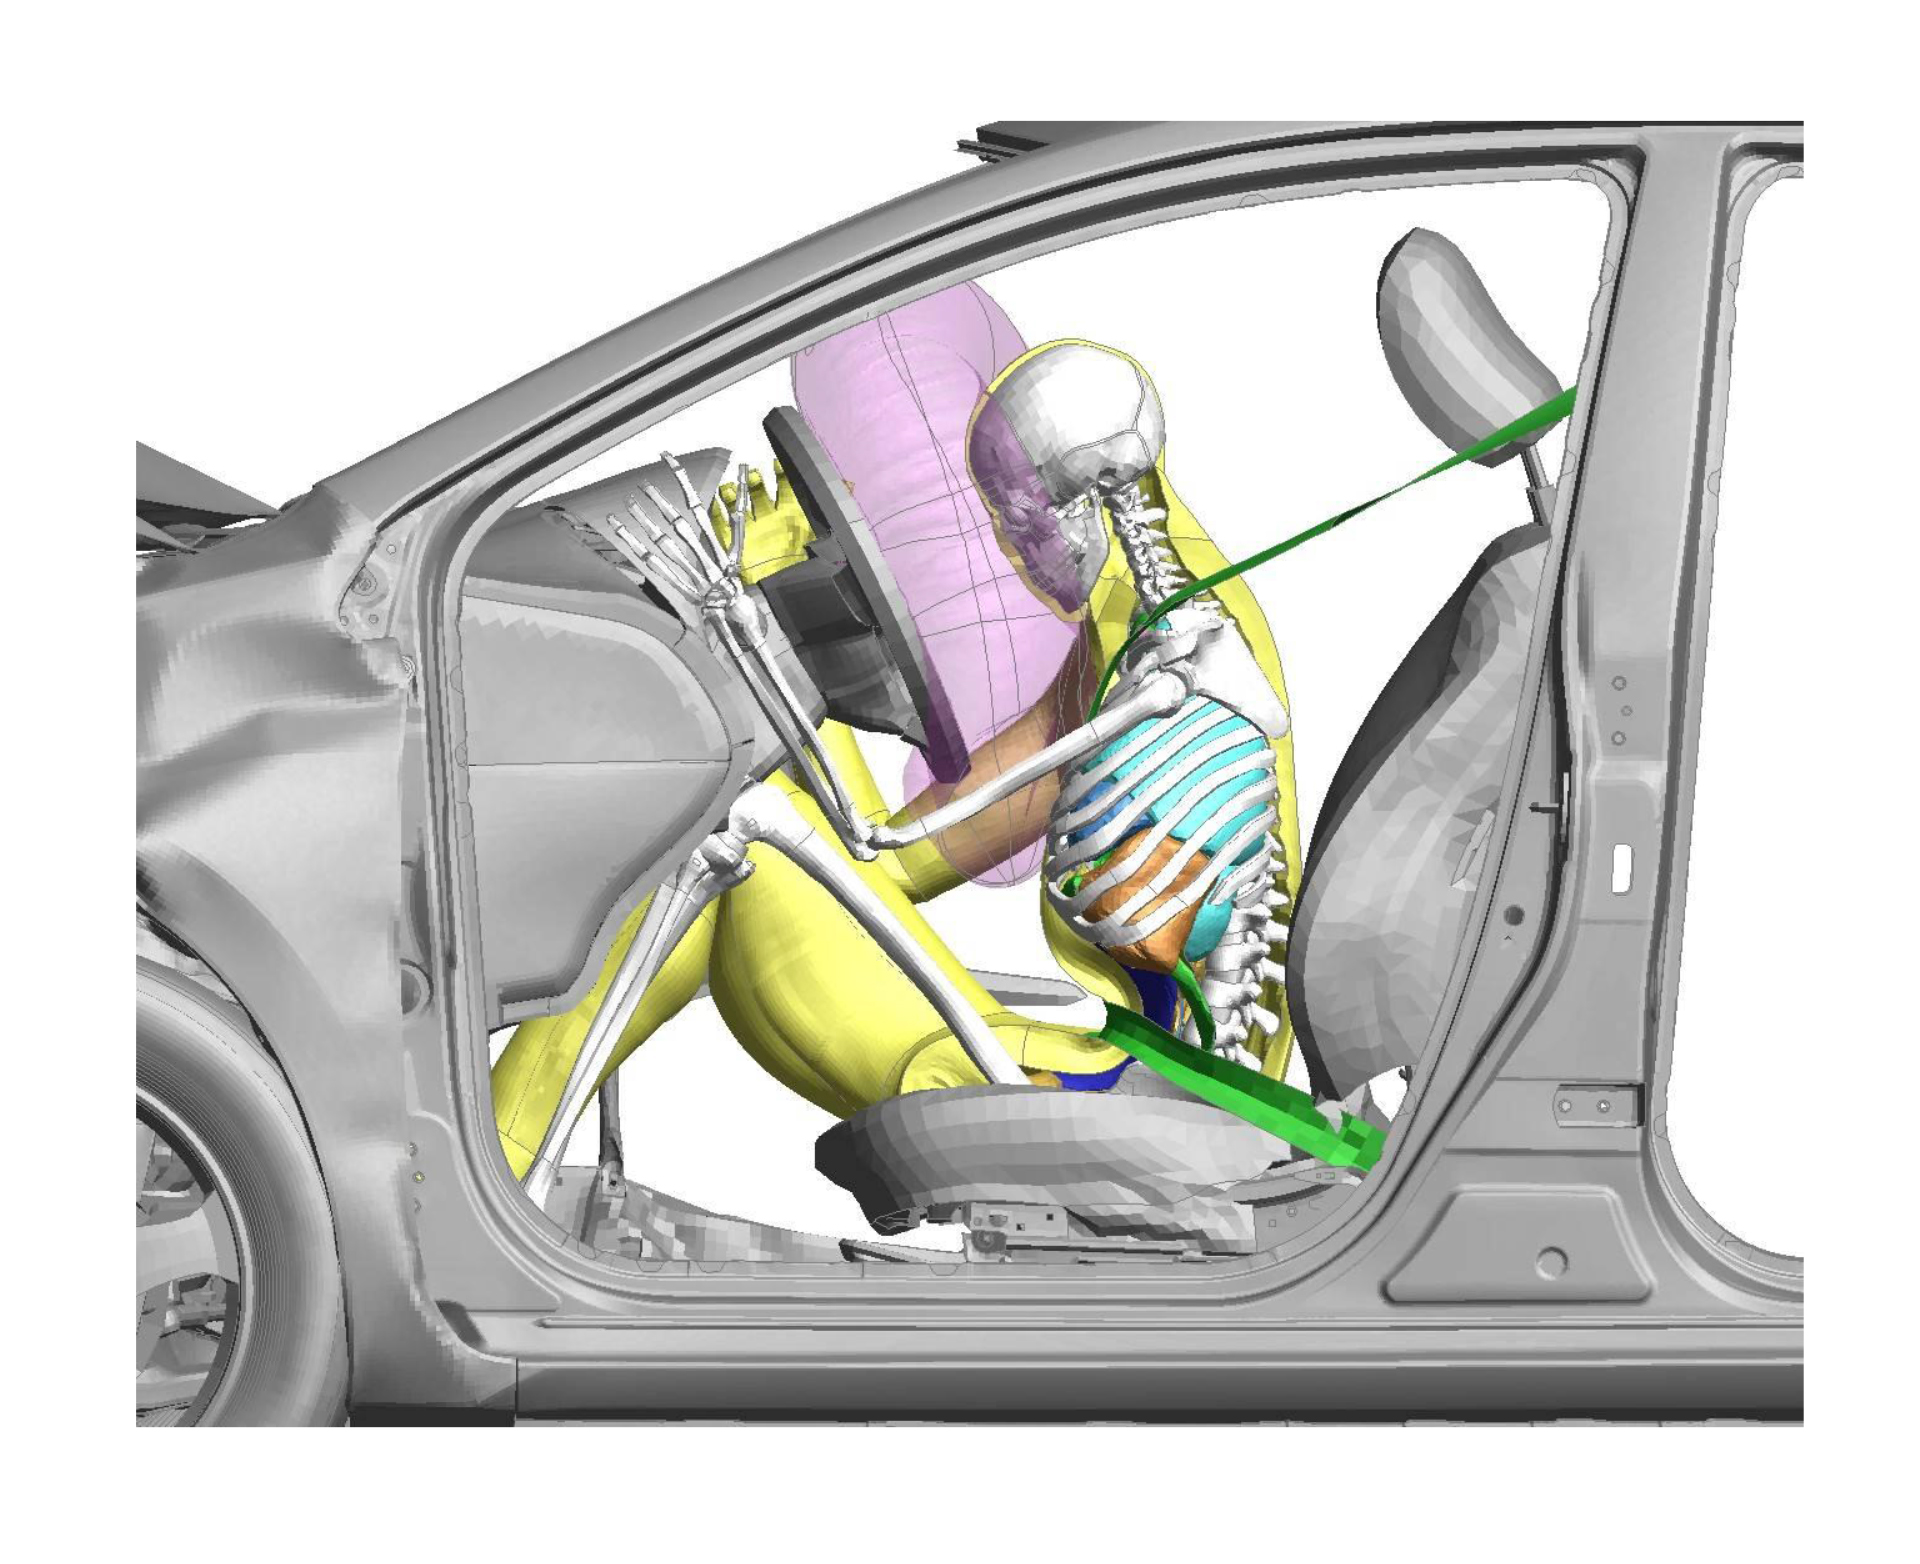 Crash Test Simulation to the Soft Core